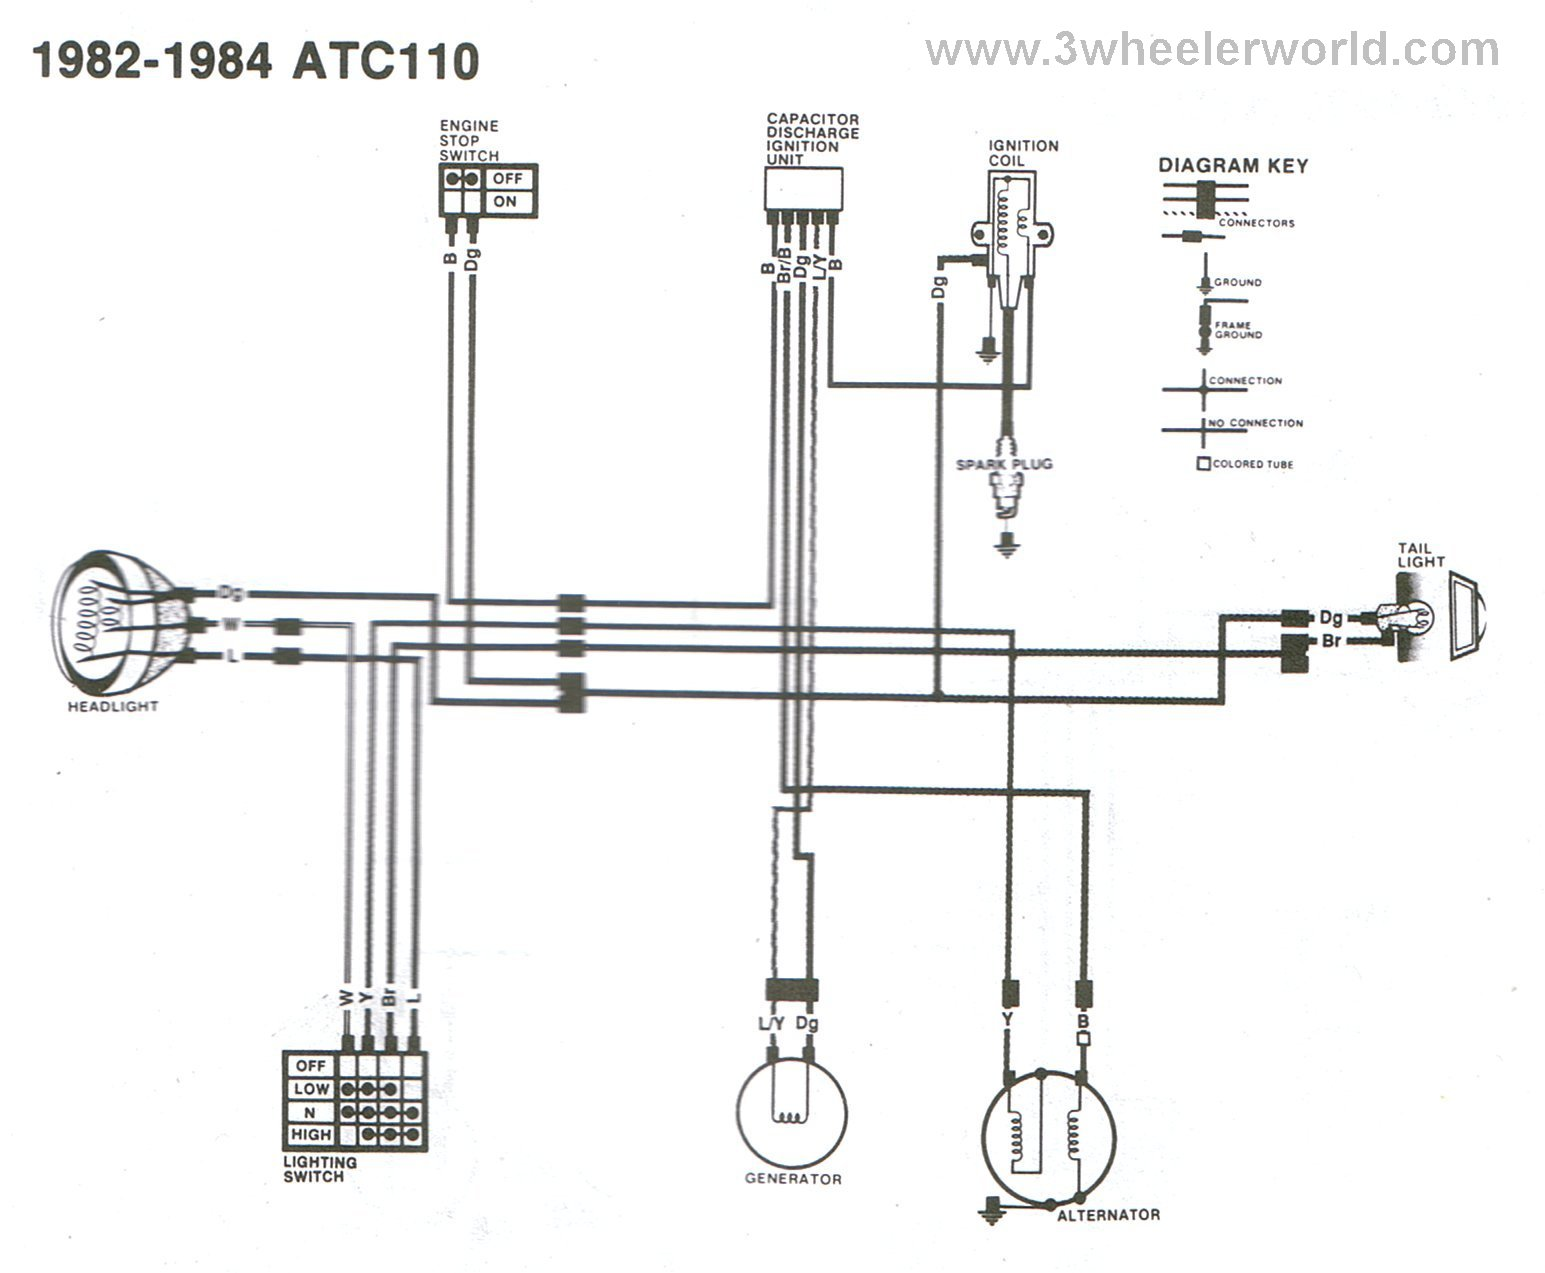 1984 Honda 200es Wiring Diagram : 31 Wiring Diagram Images